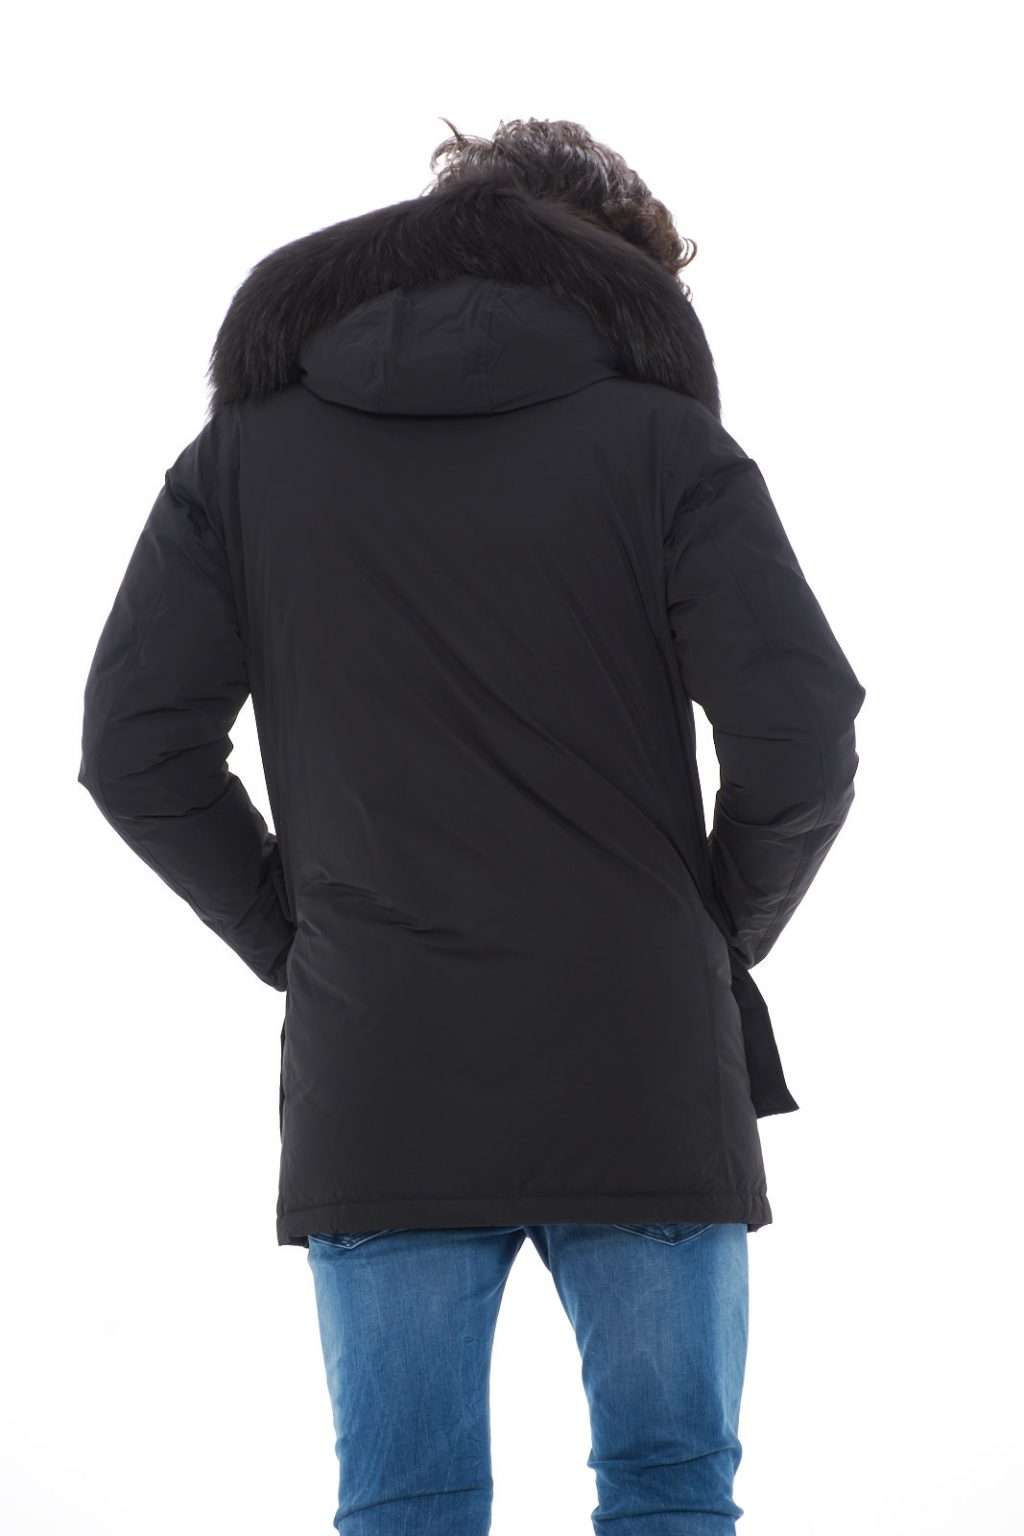 https://www.parmax.com/media/catalog/product/a/i/ai-outlet_parmax-giubbotto-uomo-woolrich-wocps2708-c.jpg